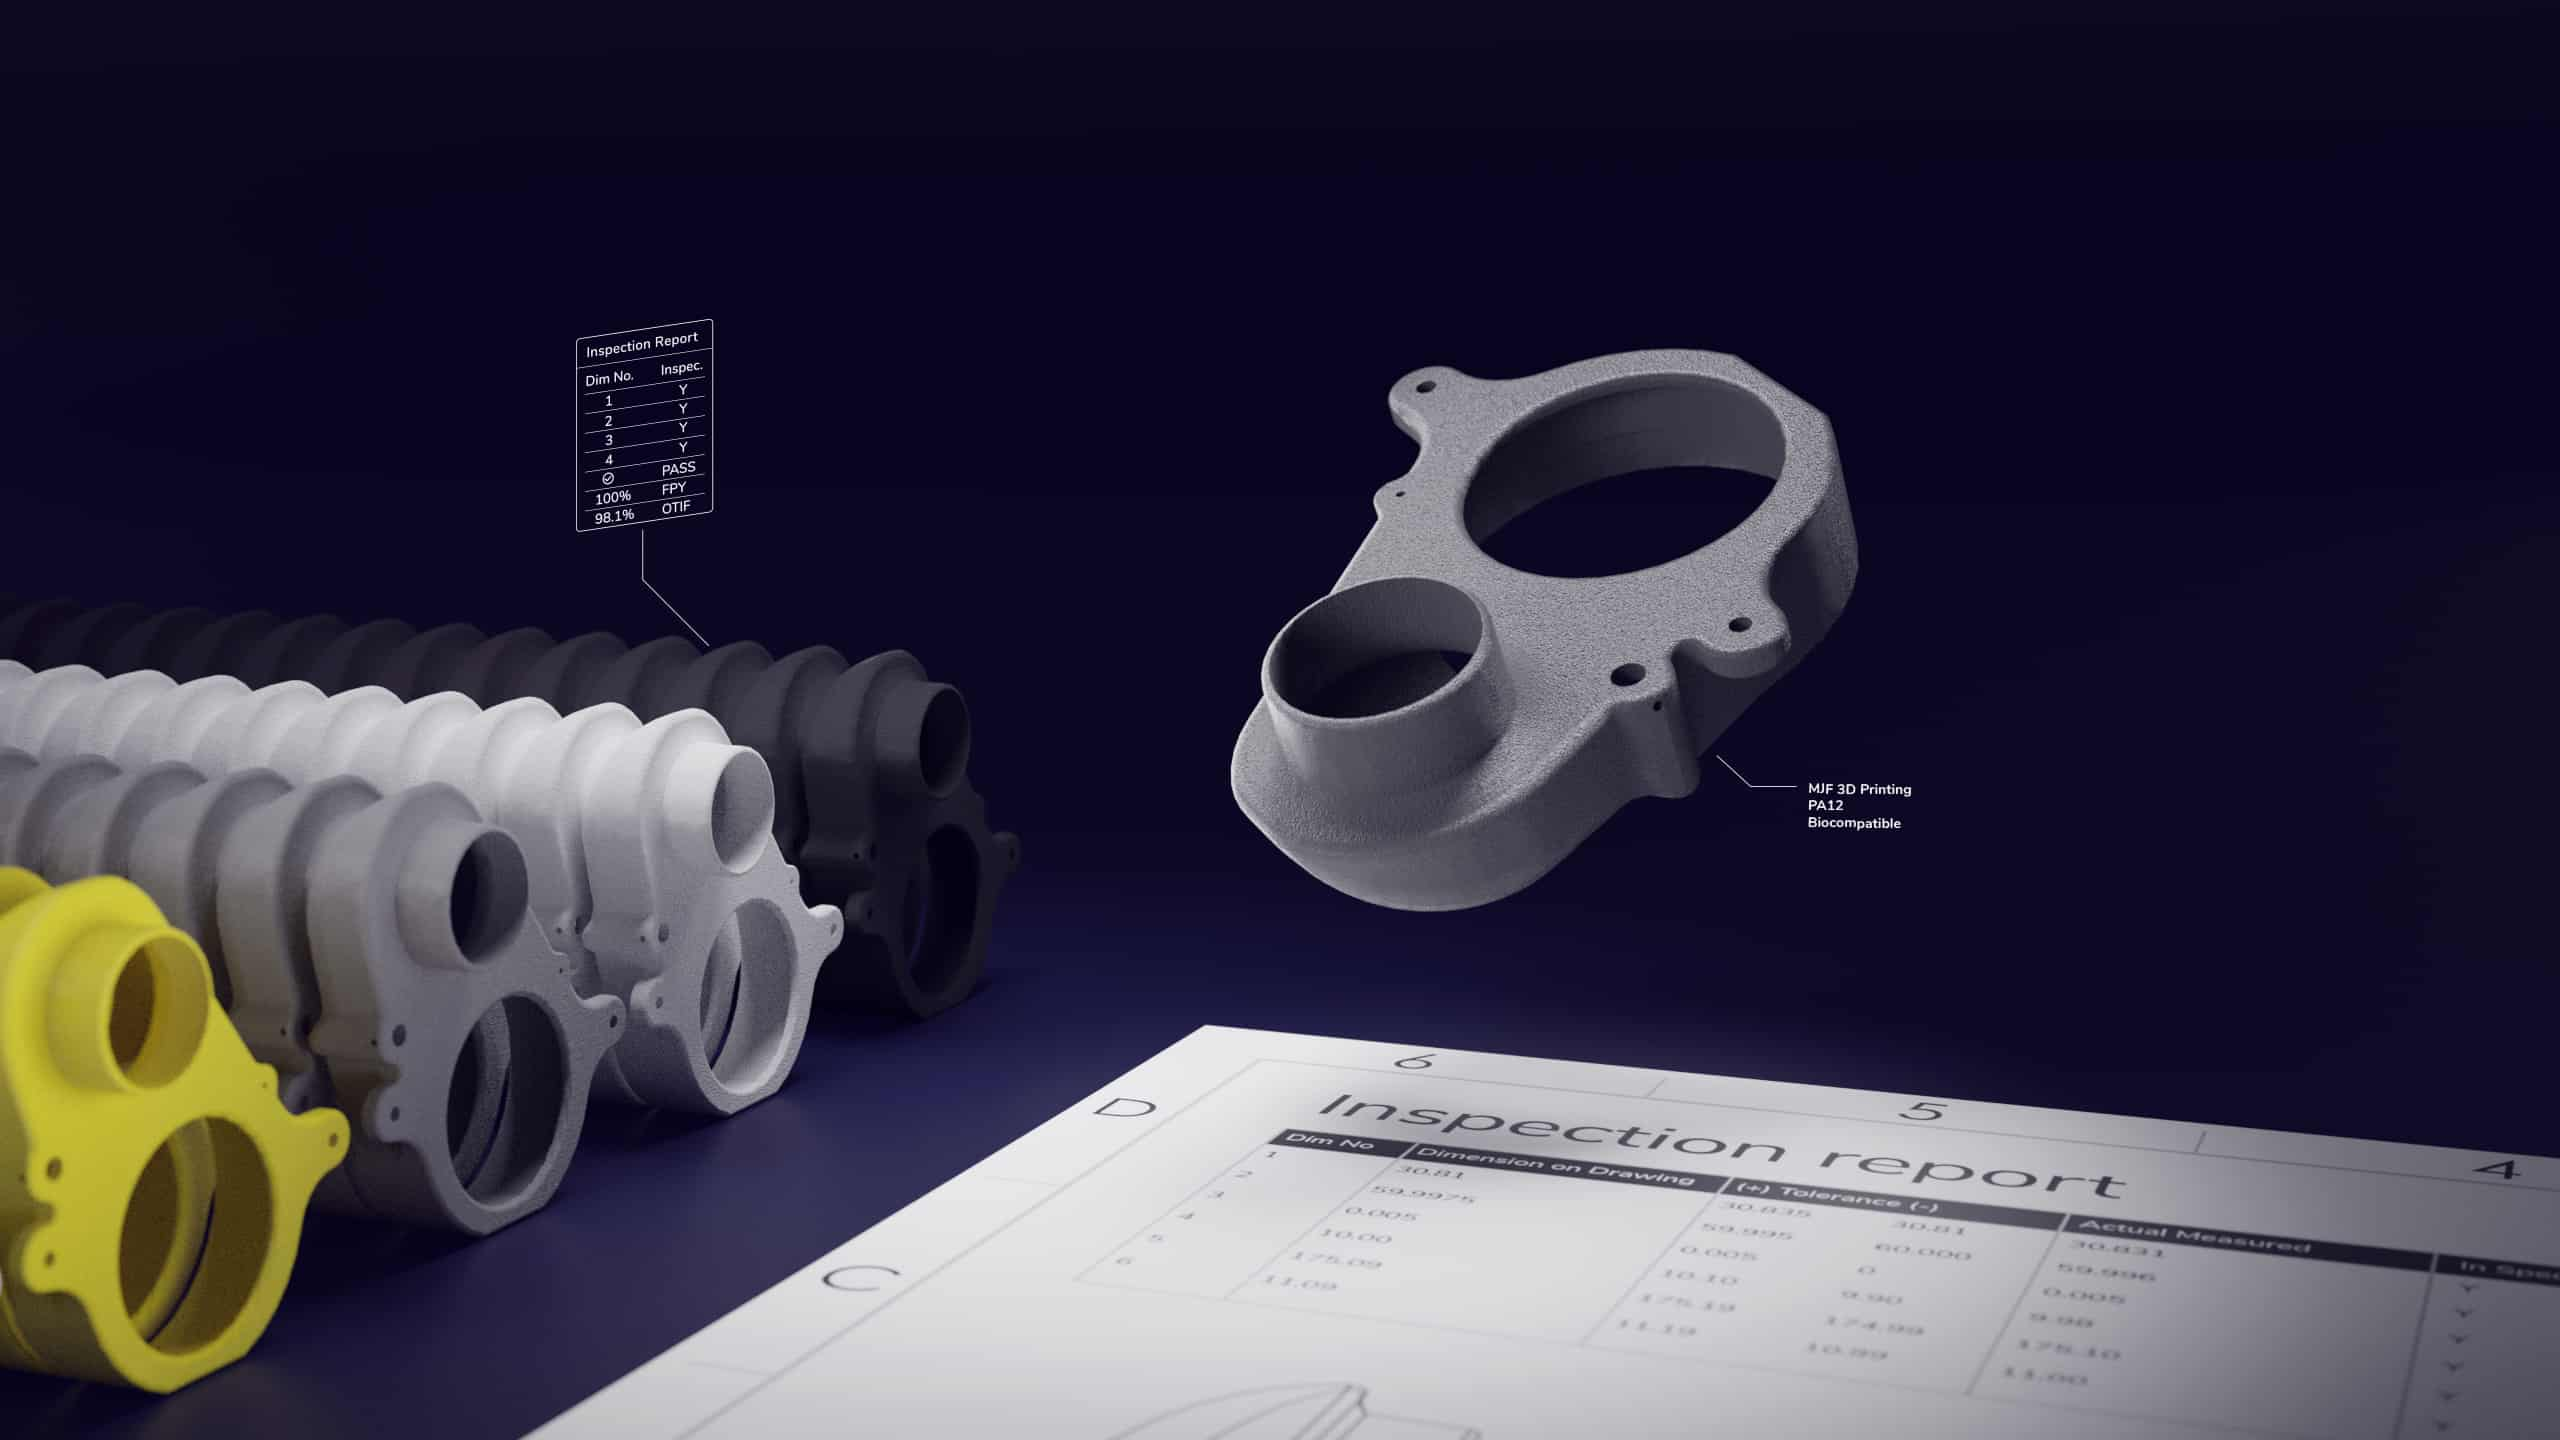 3d printed parts with an inspection report